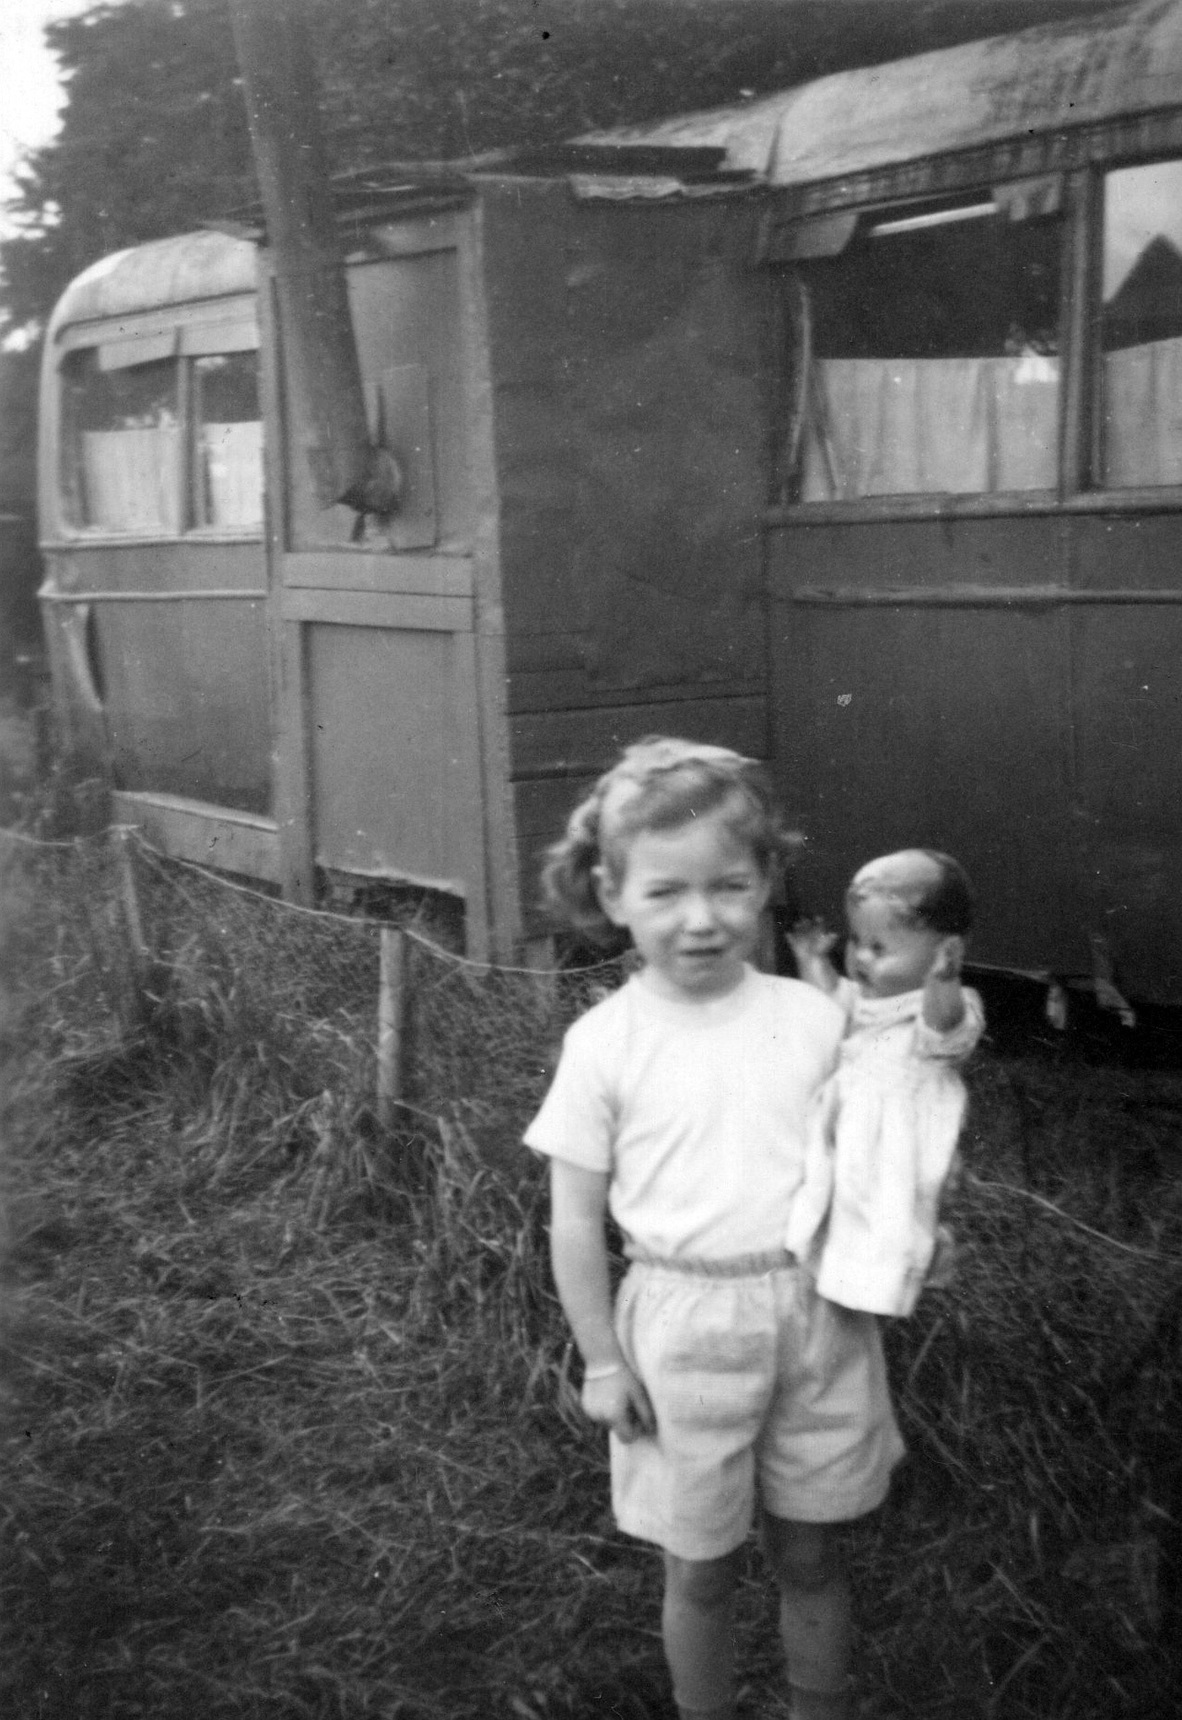 Young Girl With Doll Outside Caravan At Howgate, Penicuik 1953